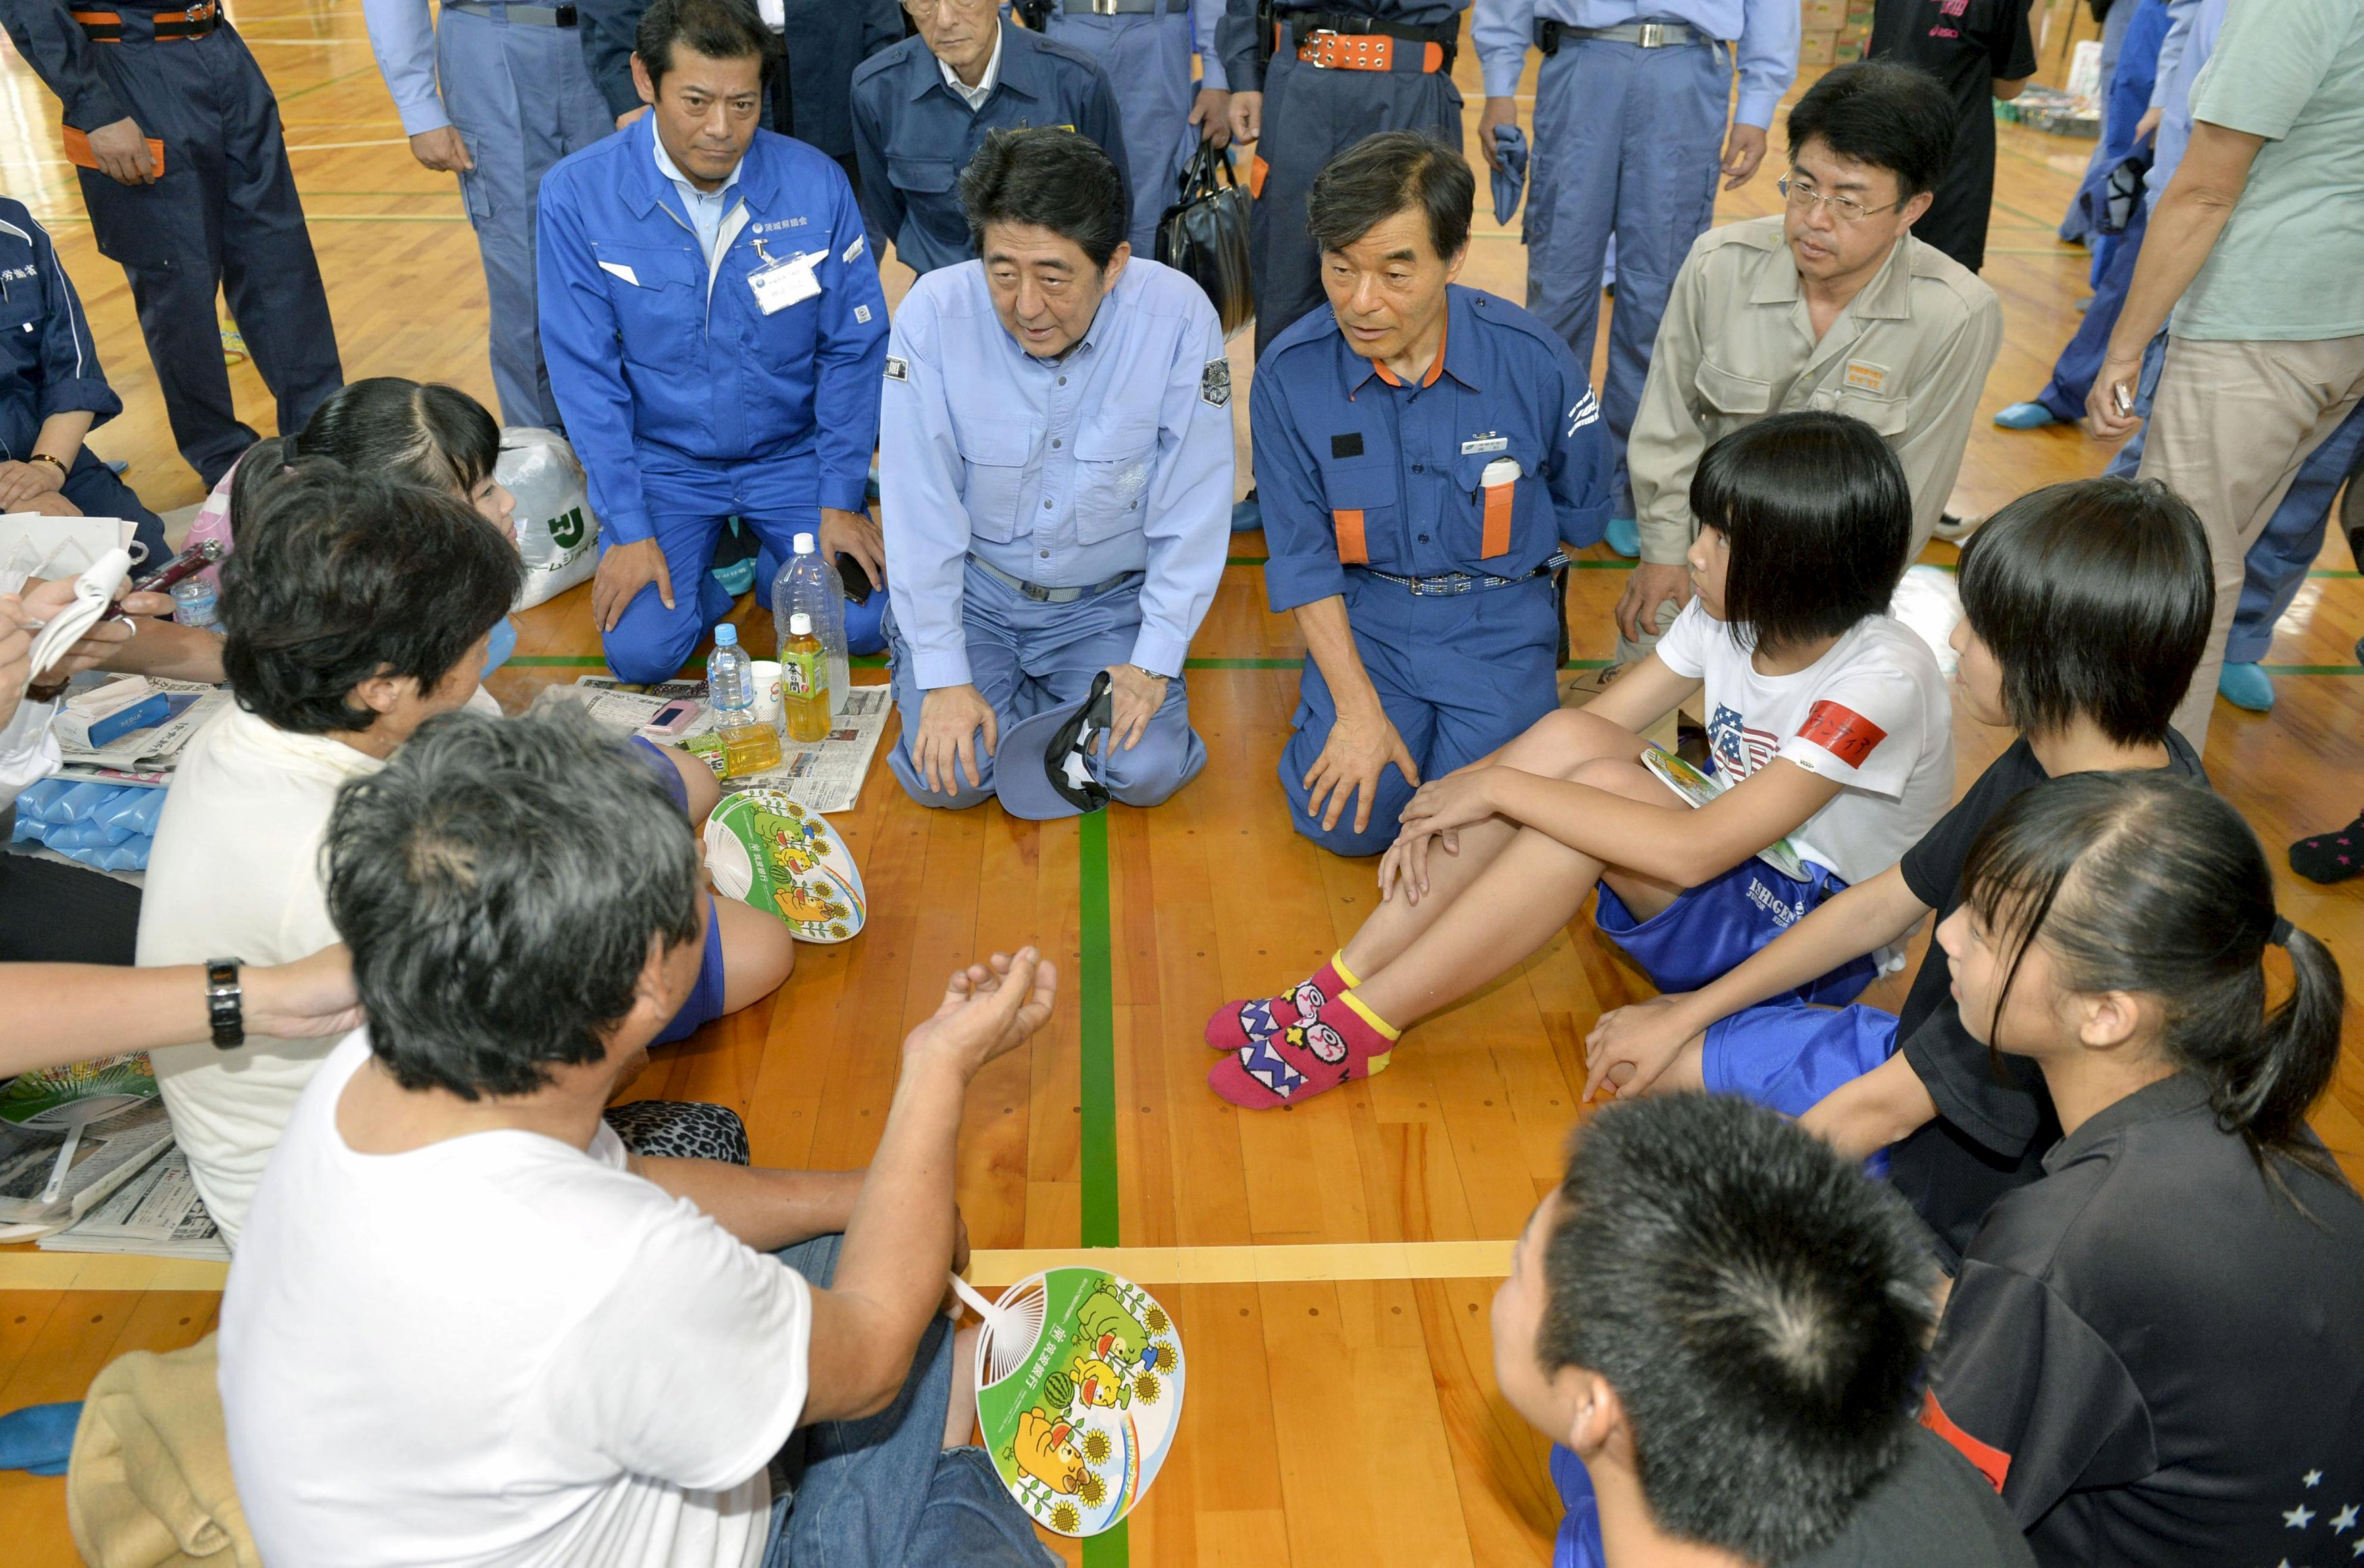 Japan's Prime Minister Shinzo Abe (top C) talks with evacuees from an area flooded by the Kinugawa river, caused by typhoon Etau, at an evacuation center in Joso, Ibaraki prefecture, Japan, in this photo taken by Kyodo September 12, 2015. Floods that swept houses off foundations and crushed them under landslides spread across Japan on Friday as more rivers burst their banks, leaving at least 23 people missing and forcing more than 100,000 to flee.   Mandatory credit REUTERS/Kyodo ATTENTION EDITORS - FOR EDITORIAL USE ONLY. NOT FOR SALE FOR MARKETING OR ADVERTISING CAMPAIGNS. THIS IMAGE HAS BEEN SUPPLIED BY A THIRD PARTY. IT IS DISTRIBUTED, EXACTLY AS RECEIVED BY REUTERS, AS A SERVICE TO CLIENTS. MANDATORY CREDIT. JAPAN OUT. NO COMMERCIAL OR EDITORIAL SALES IN JAPAN.